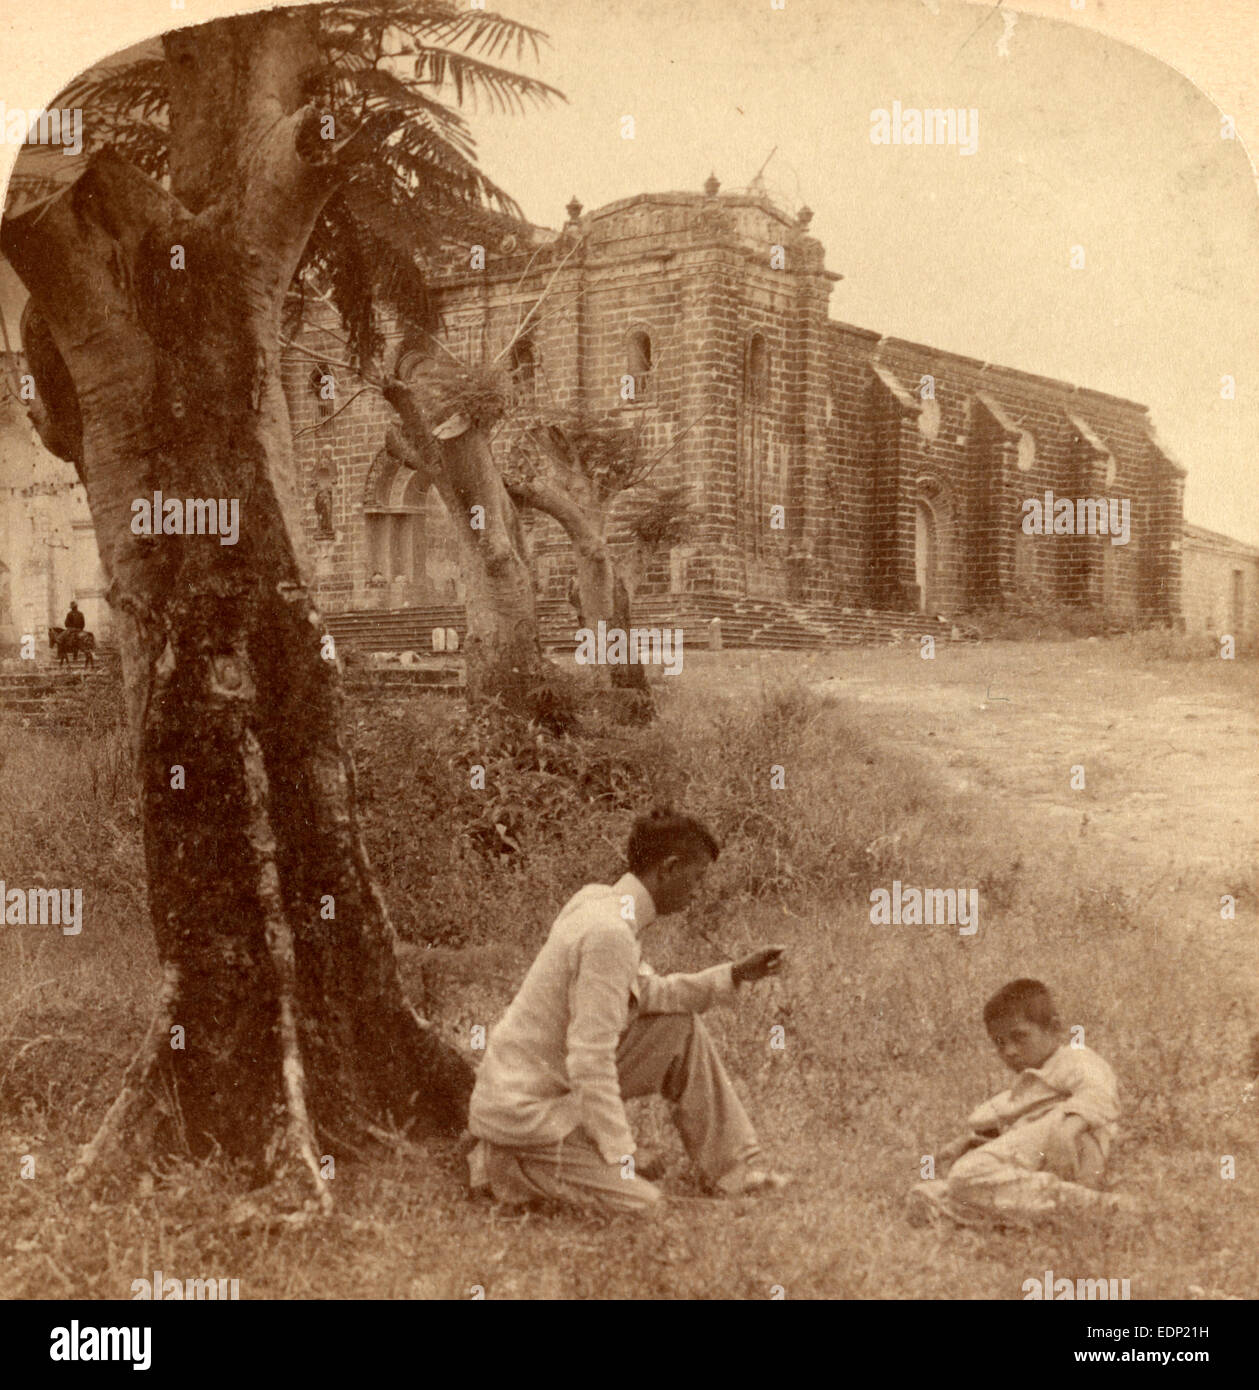 Church at Guadalupe destroyed by fire, Philippines, 1899, Vintage photography - Stock Image